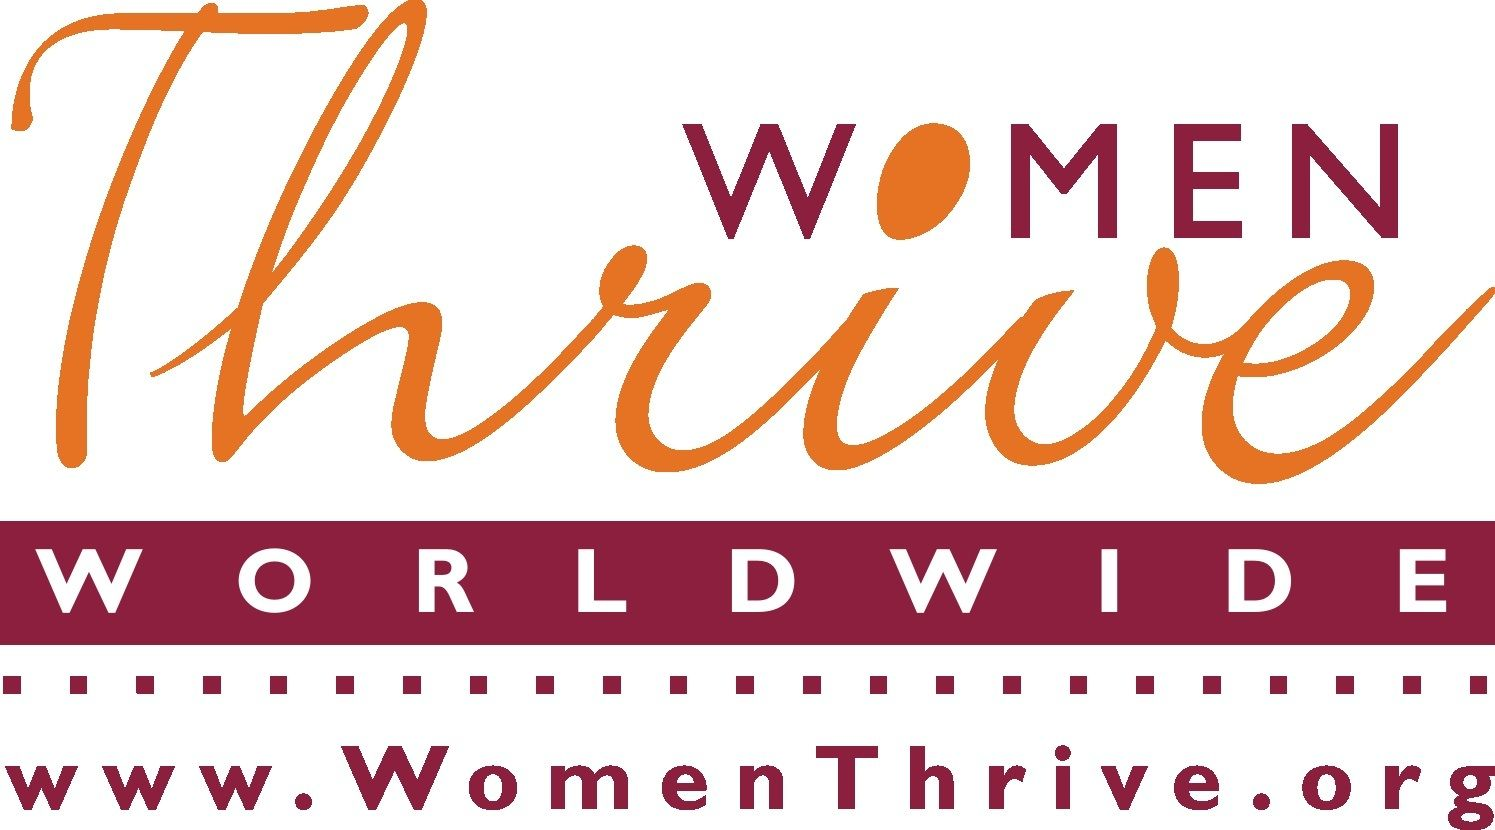 women thrive worldwide advocates for women and girls living in women thrive worldwide advocates for women and girls living in poverty throughout the world so that